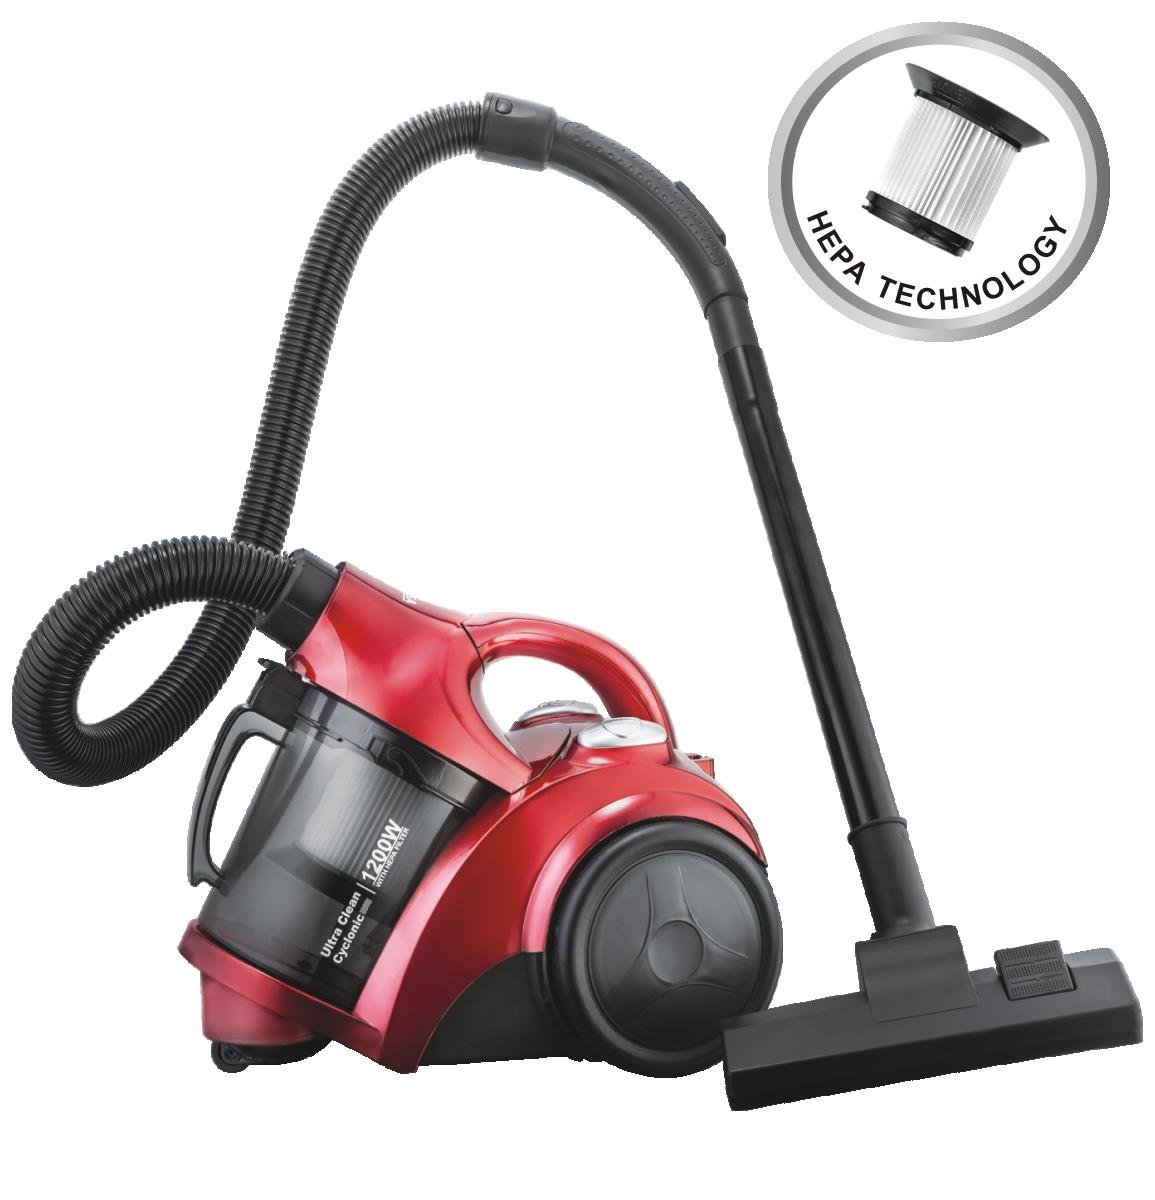 Inalsa Ultra Clean Cyclonic 1200 Watt Dry Vacuum Cleaner